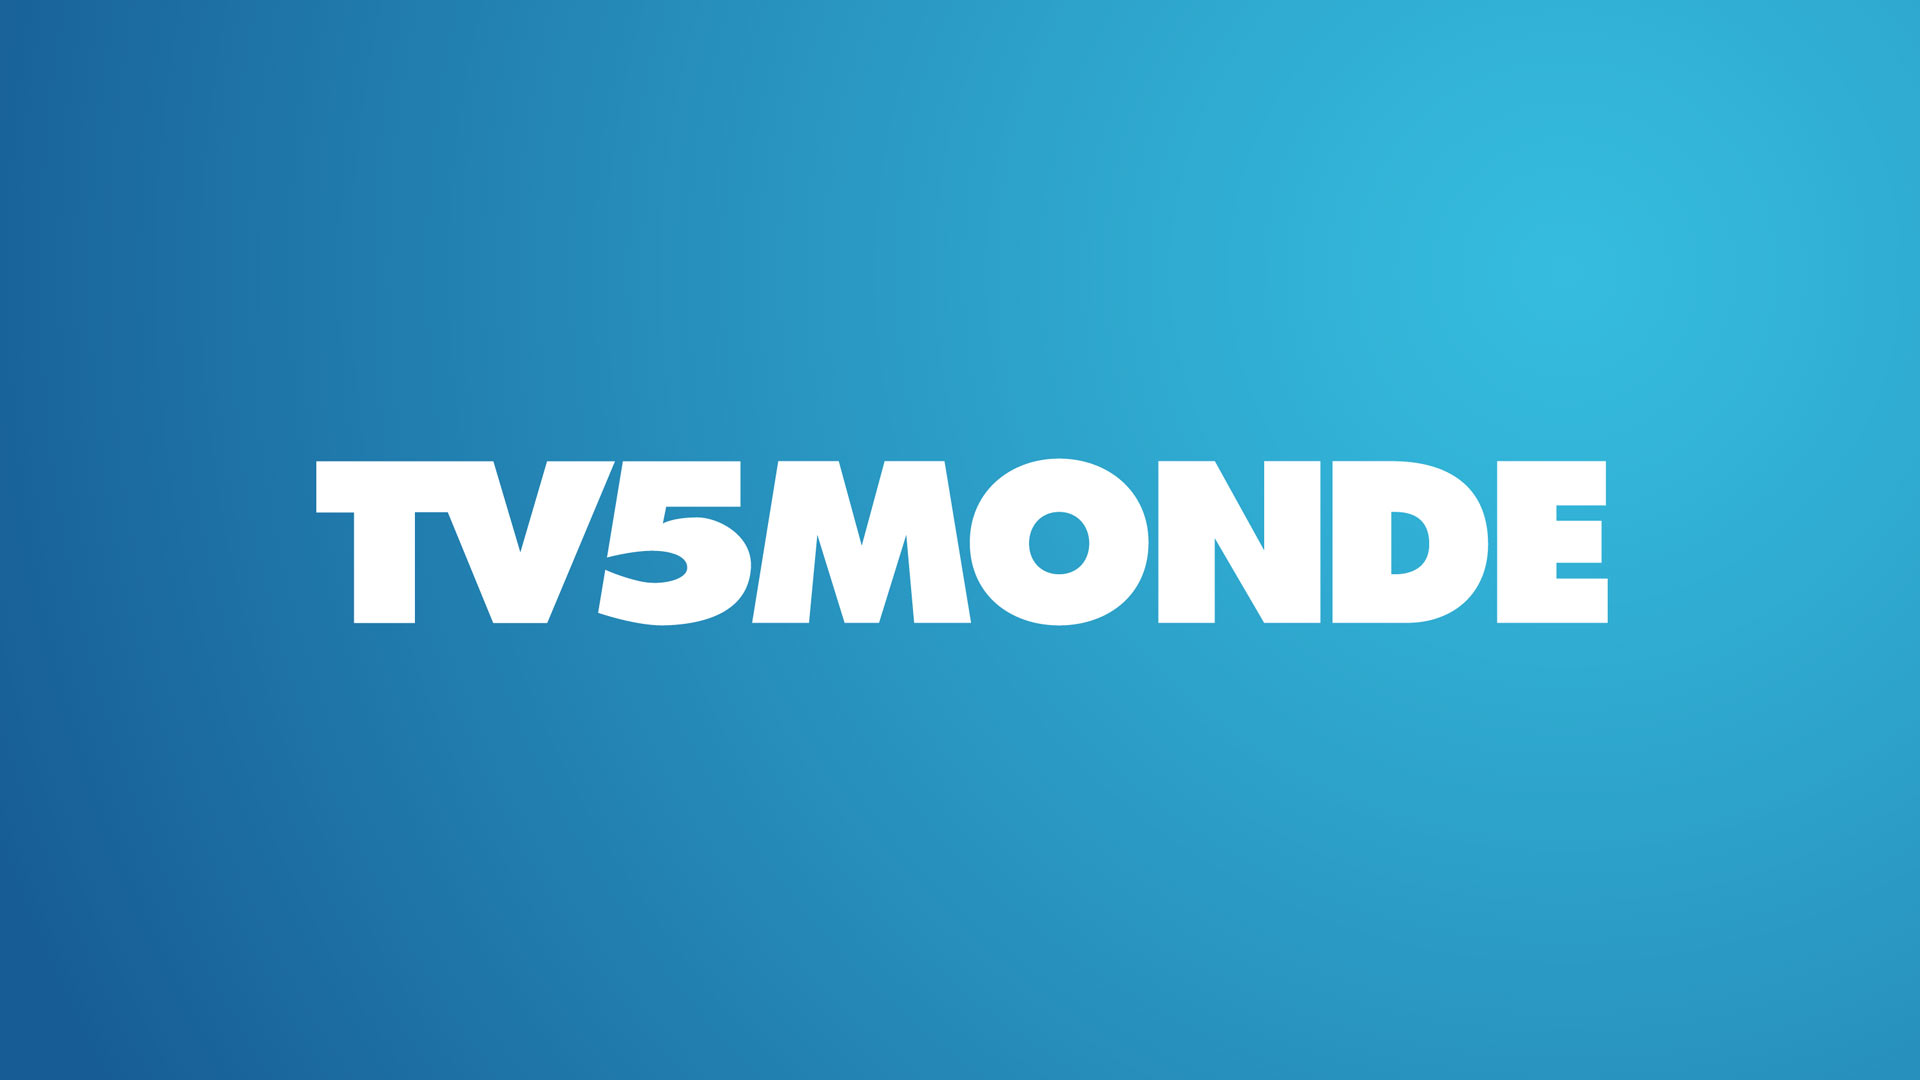 regarder tv5monde en direct live 100 gratuit tv direct. Black Bedroom Furniture Sets. Home Design Ideas